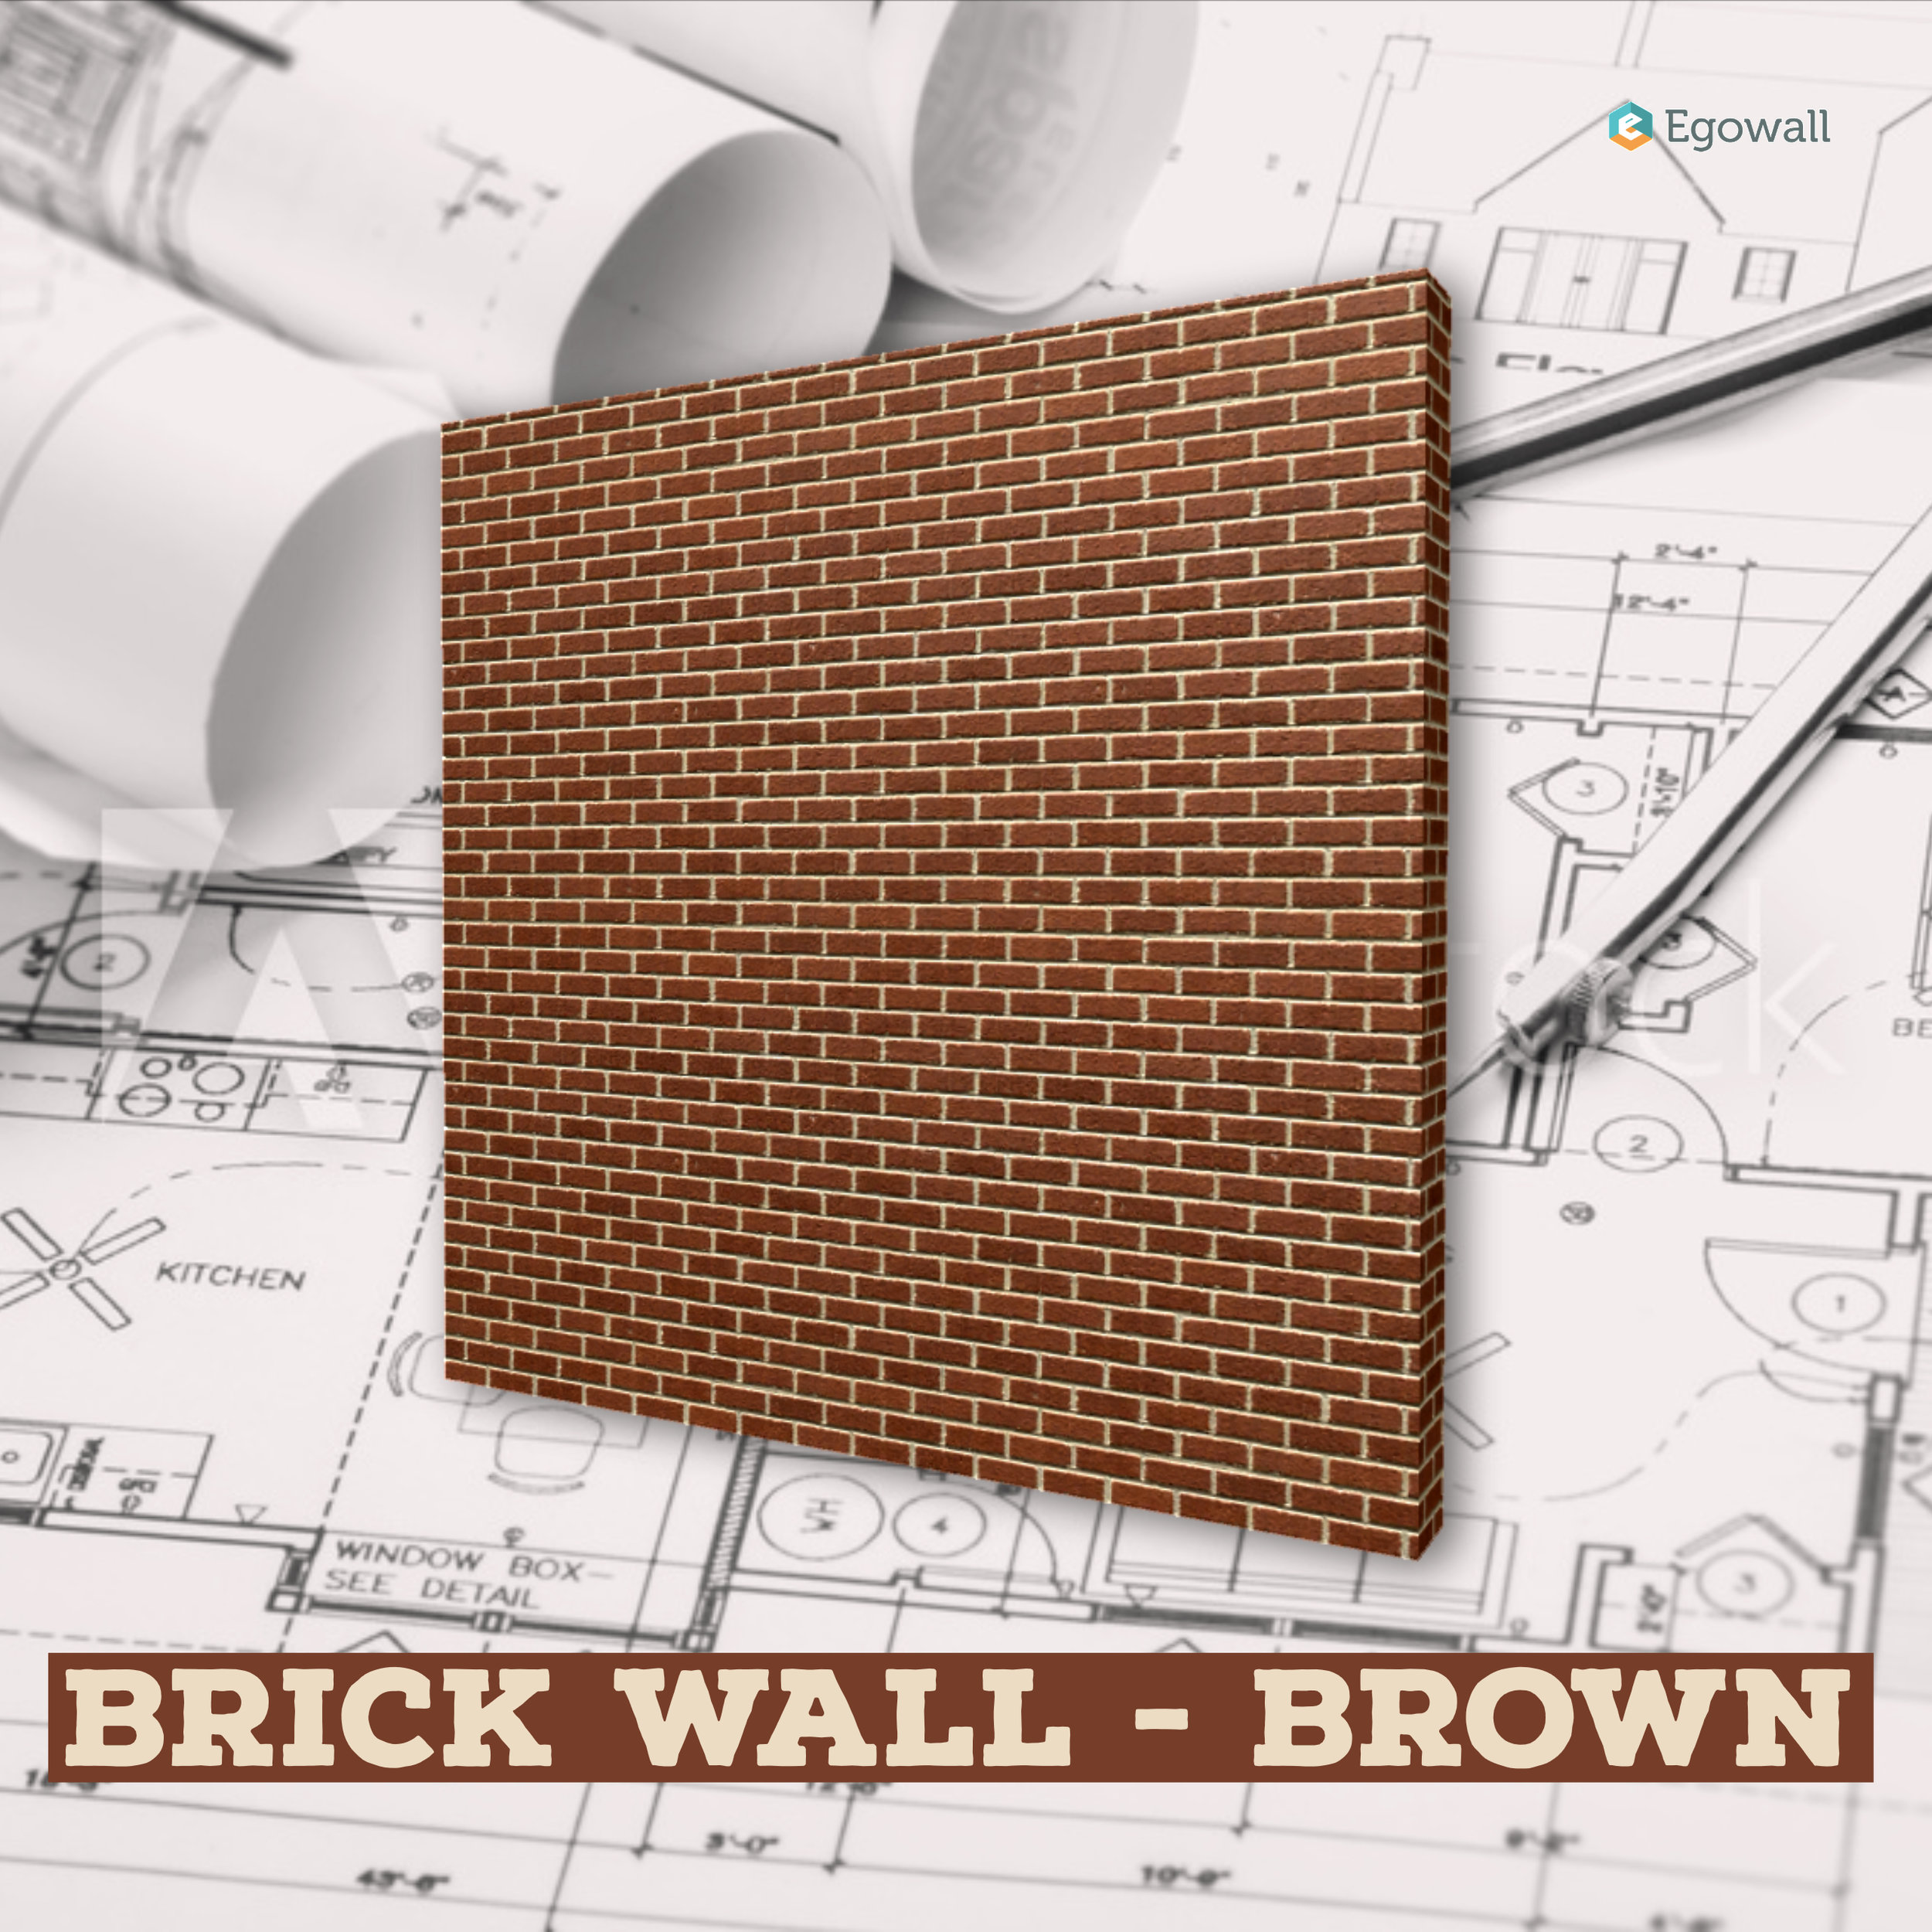 Brick Wall - Brown.Instagram.jpg